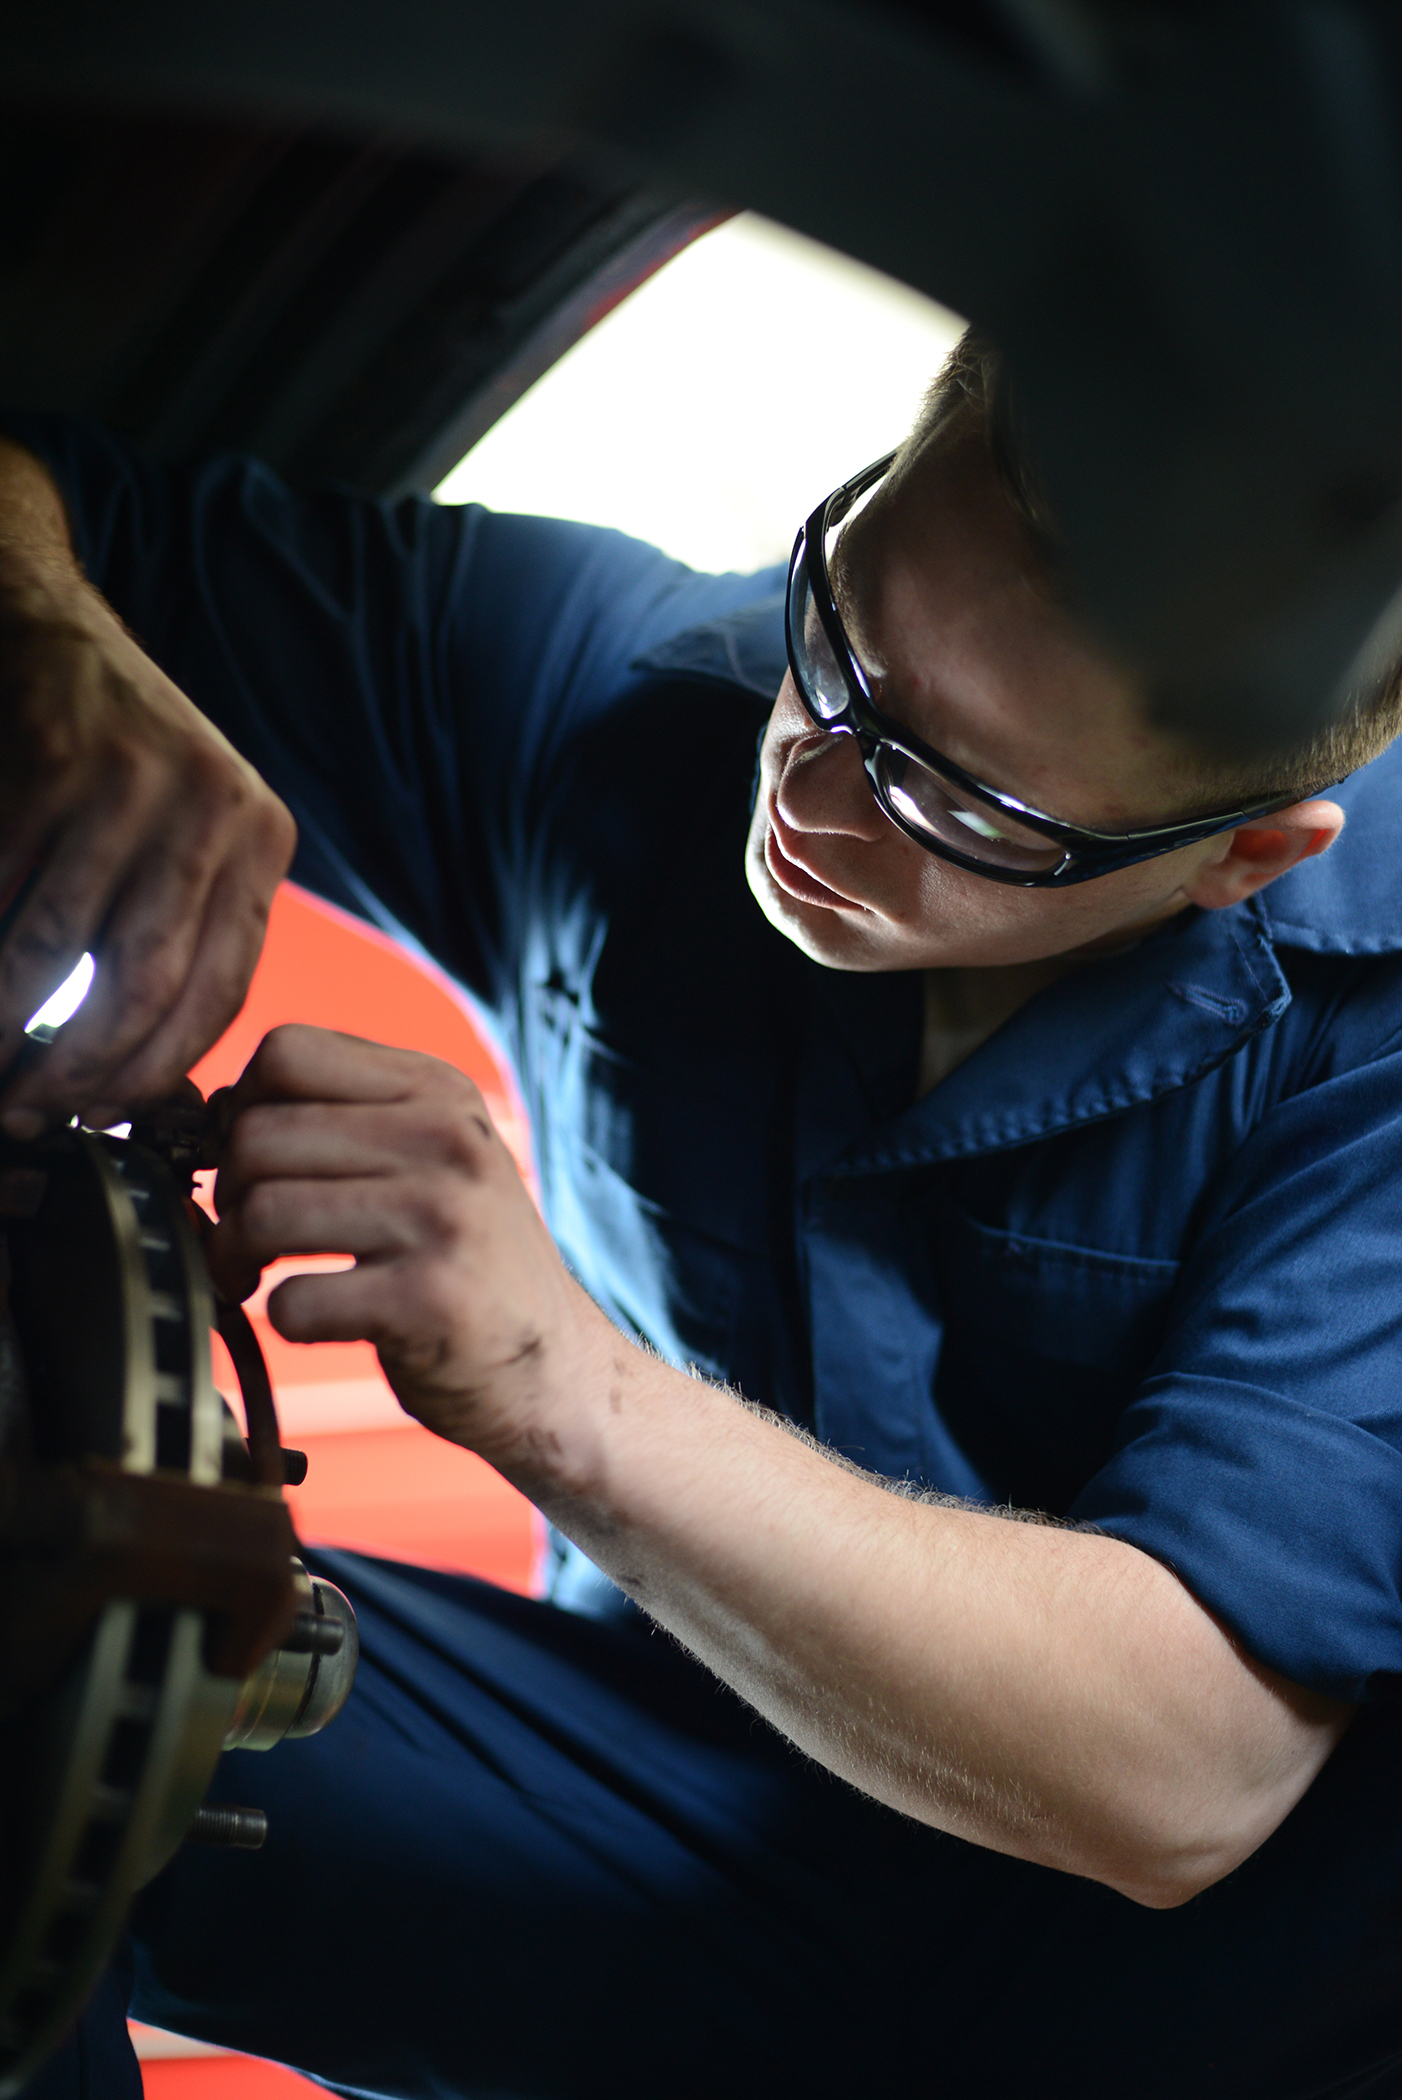 374th Logistics Readiness Squadron vehicle maintenance journeyman, Senior Airman Brandon Higginbotham, installs new brakes on a government vehicle at Yokota Air Base, Japan, April 28, 2015. Higginbotham determined that the damage to the breaks resulted from normal wear and tear. (U.S. Air Force photo by Airman 1st Class David C. Danford/Released))